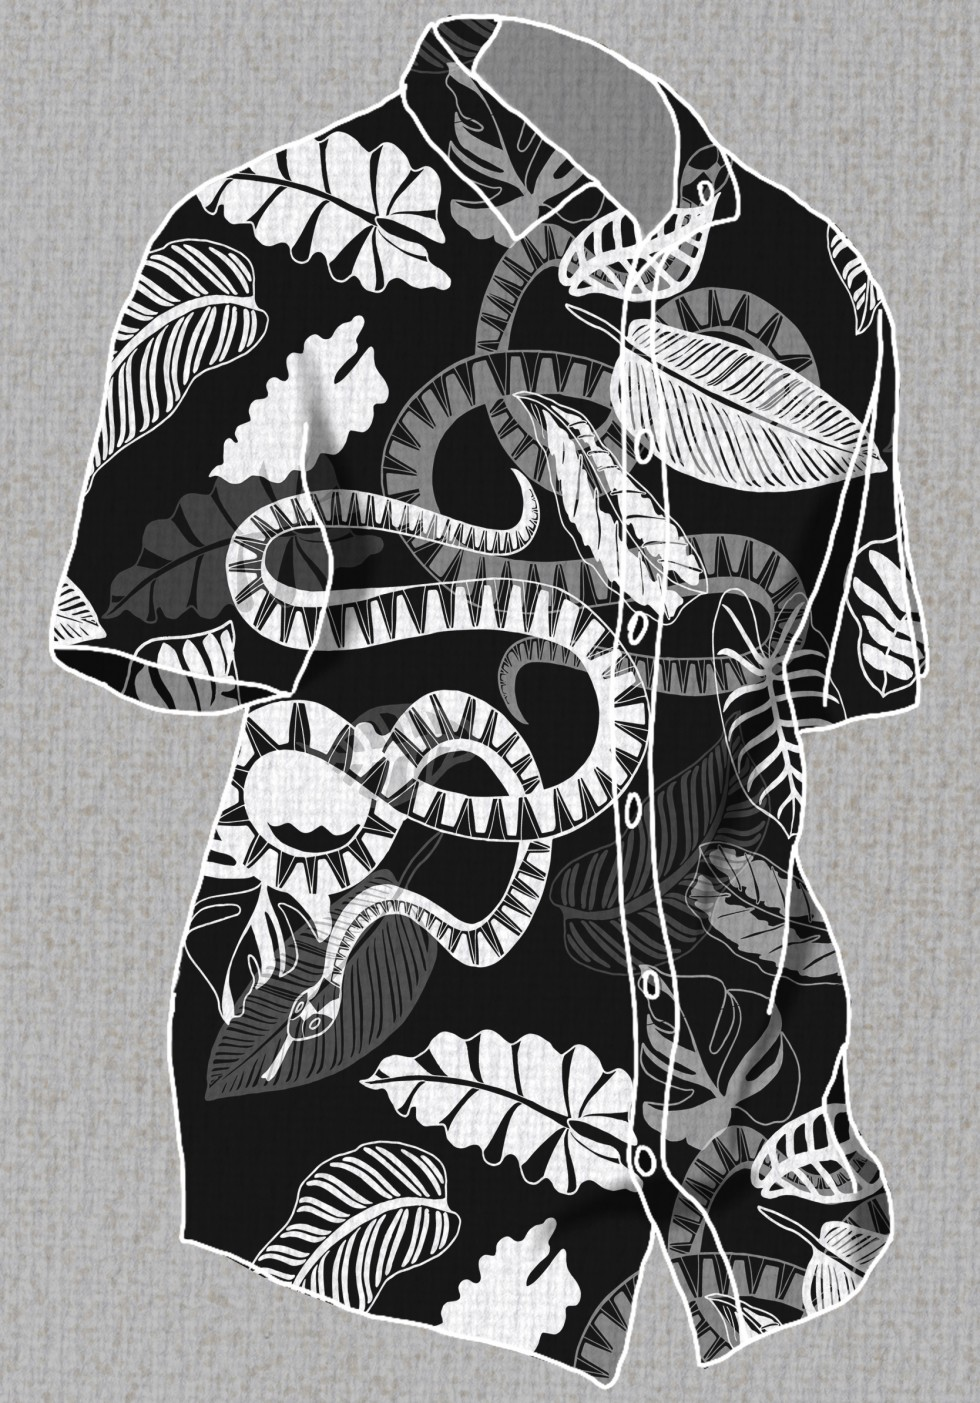 This is a surface design pattern created for young men's apparel. The pattern uses monochromatic colors, thick line work style and different opacity levels. The content of this design is a snake and tropical foliage. This pattern has been used on a men's